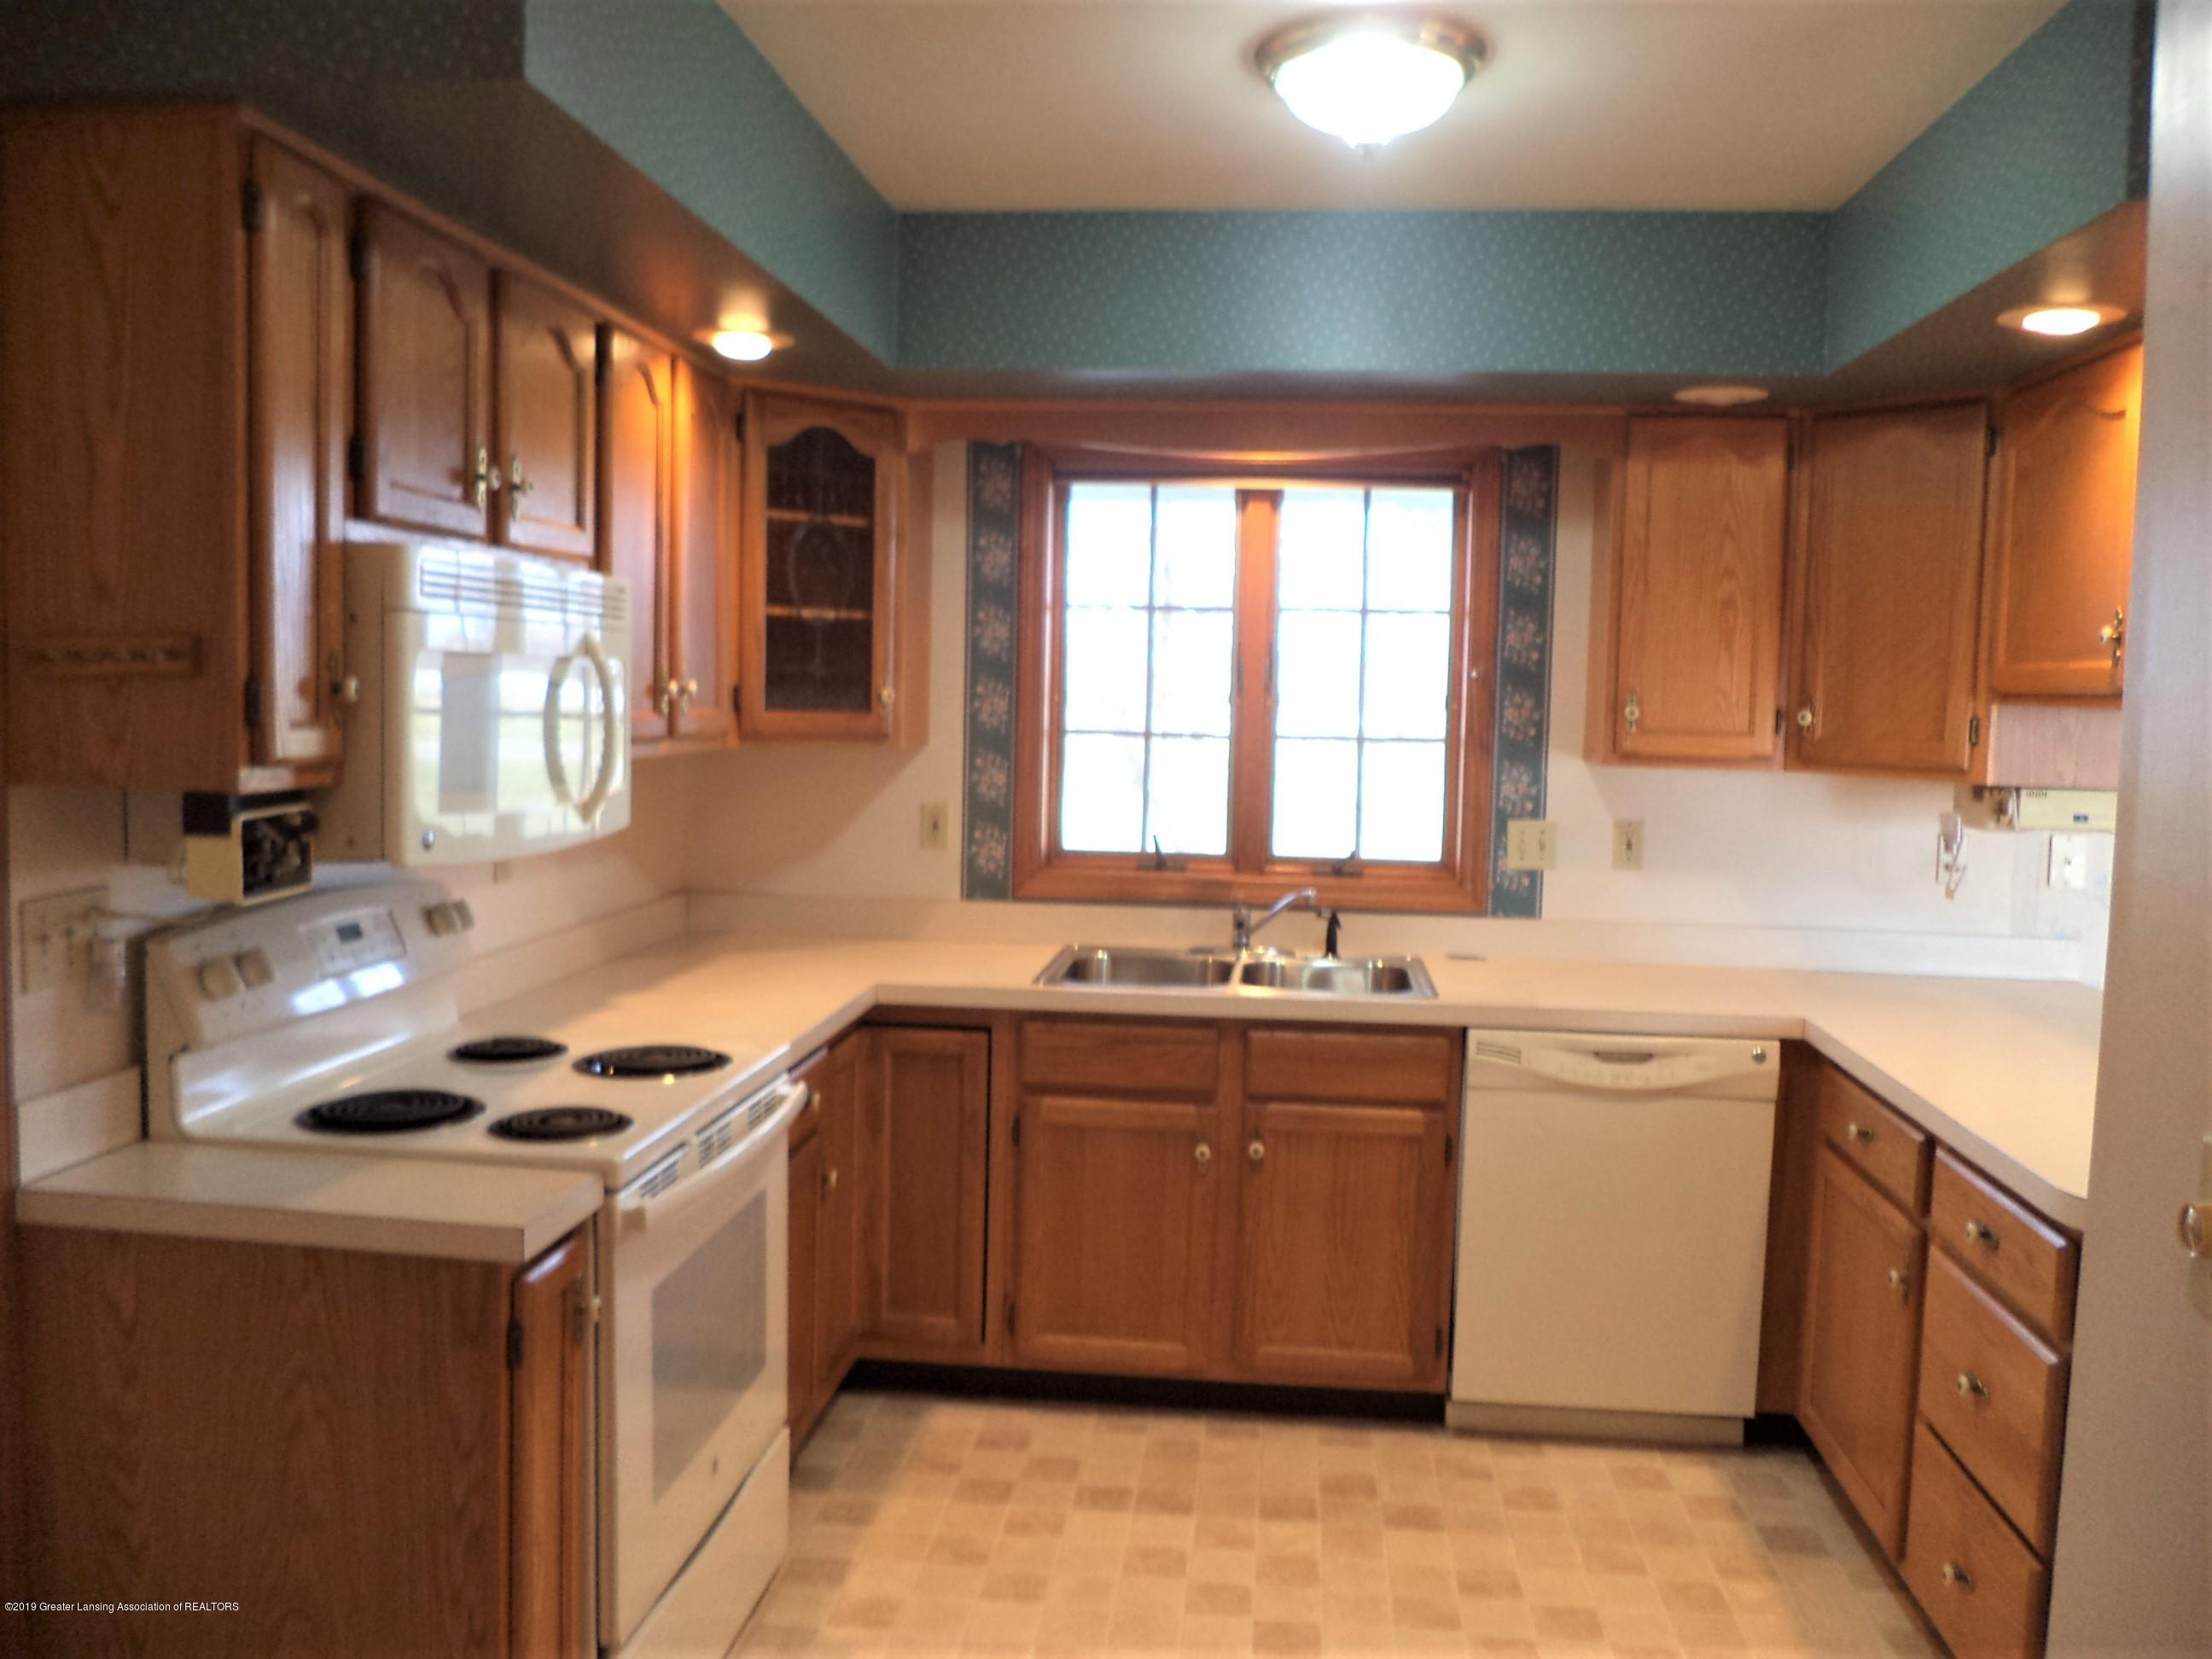 5535 W Parks Rd - Kitchen view 3 - 10